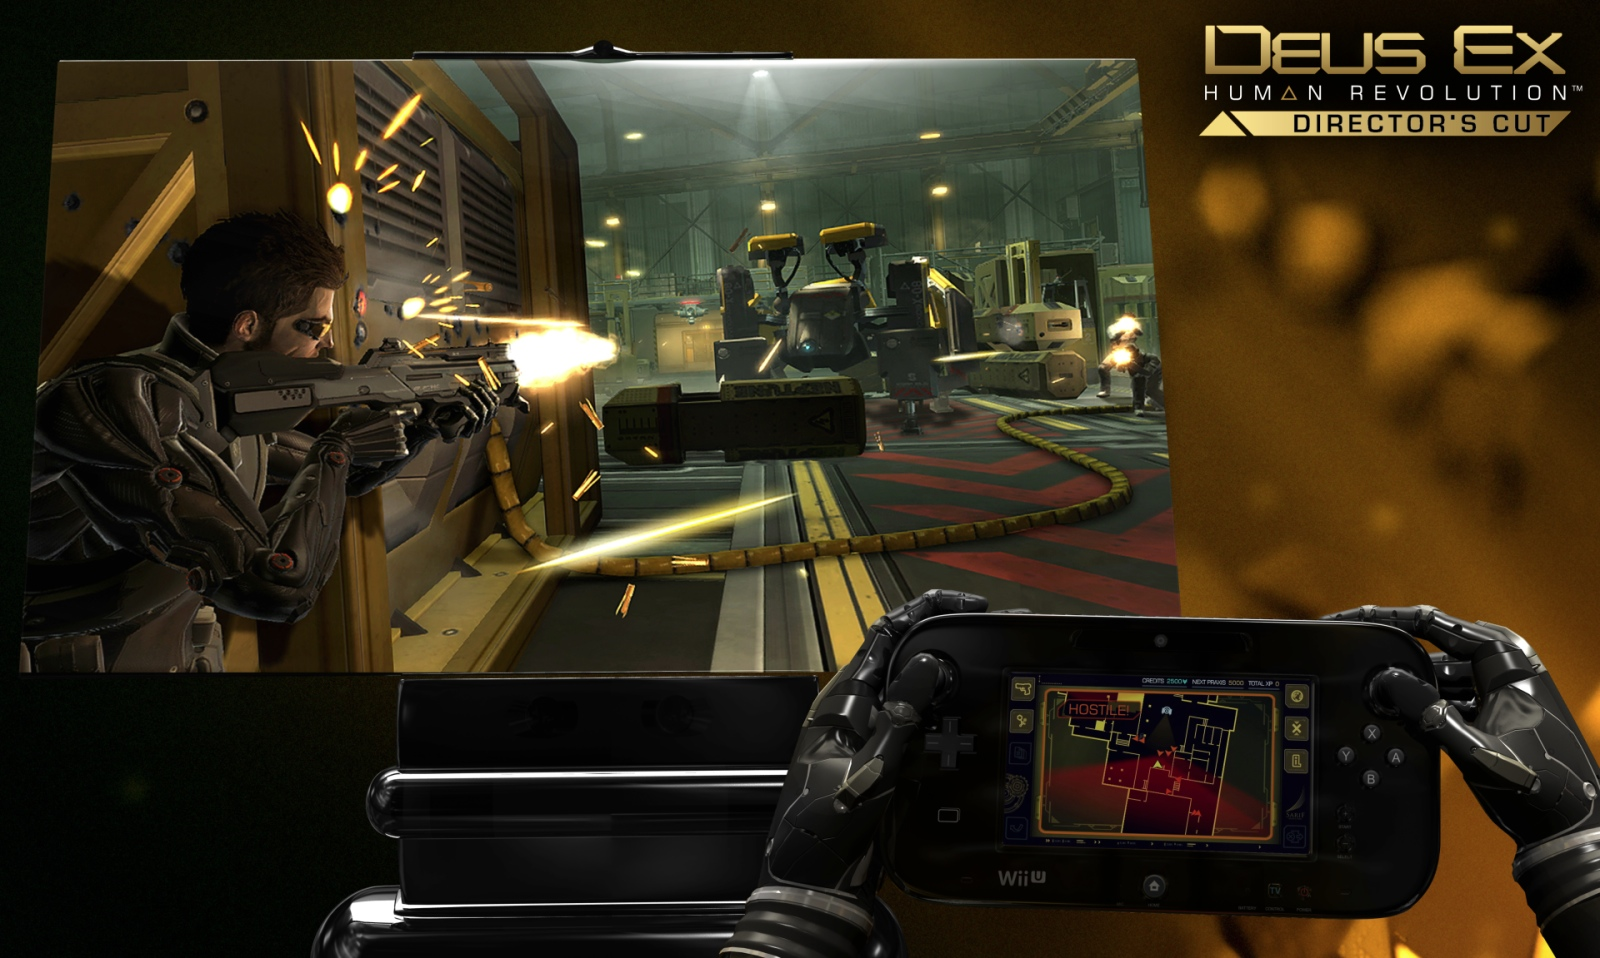 It really does look great, and the hacking on the GamePad is pretty sweet!